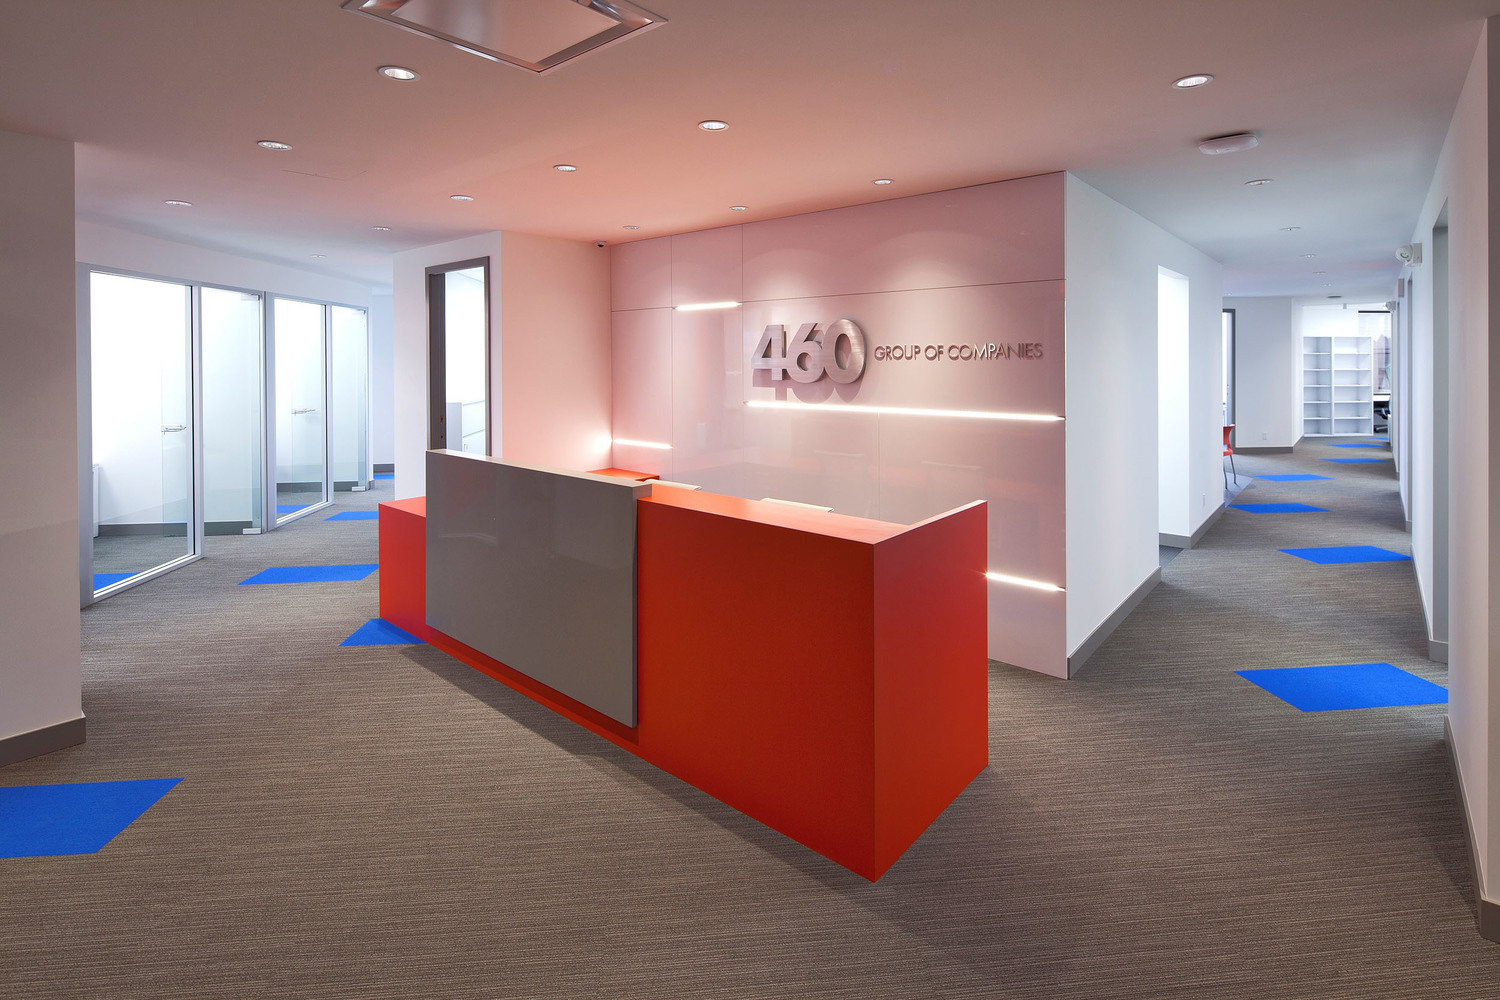 460 Group We Are An Integrated Of Companies On Vancouver Island That Specialize In Real